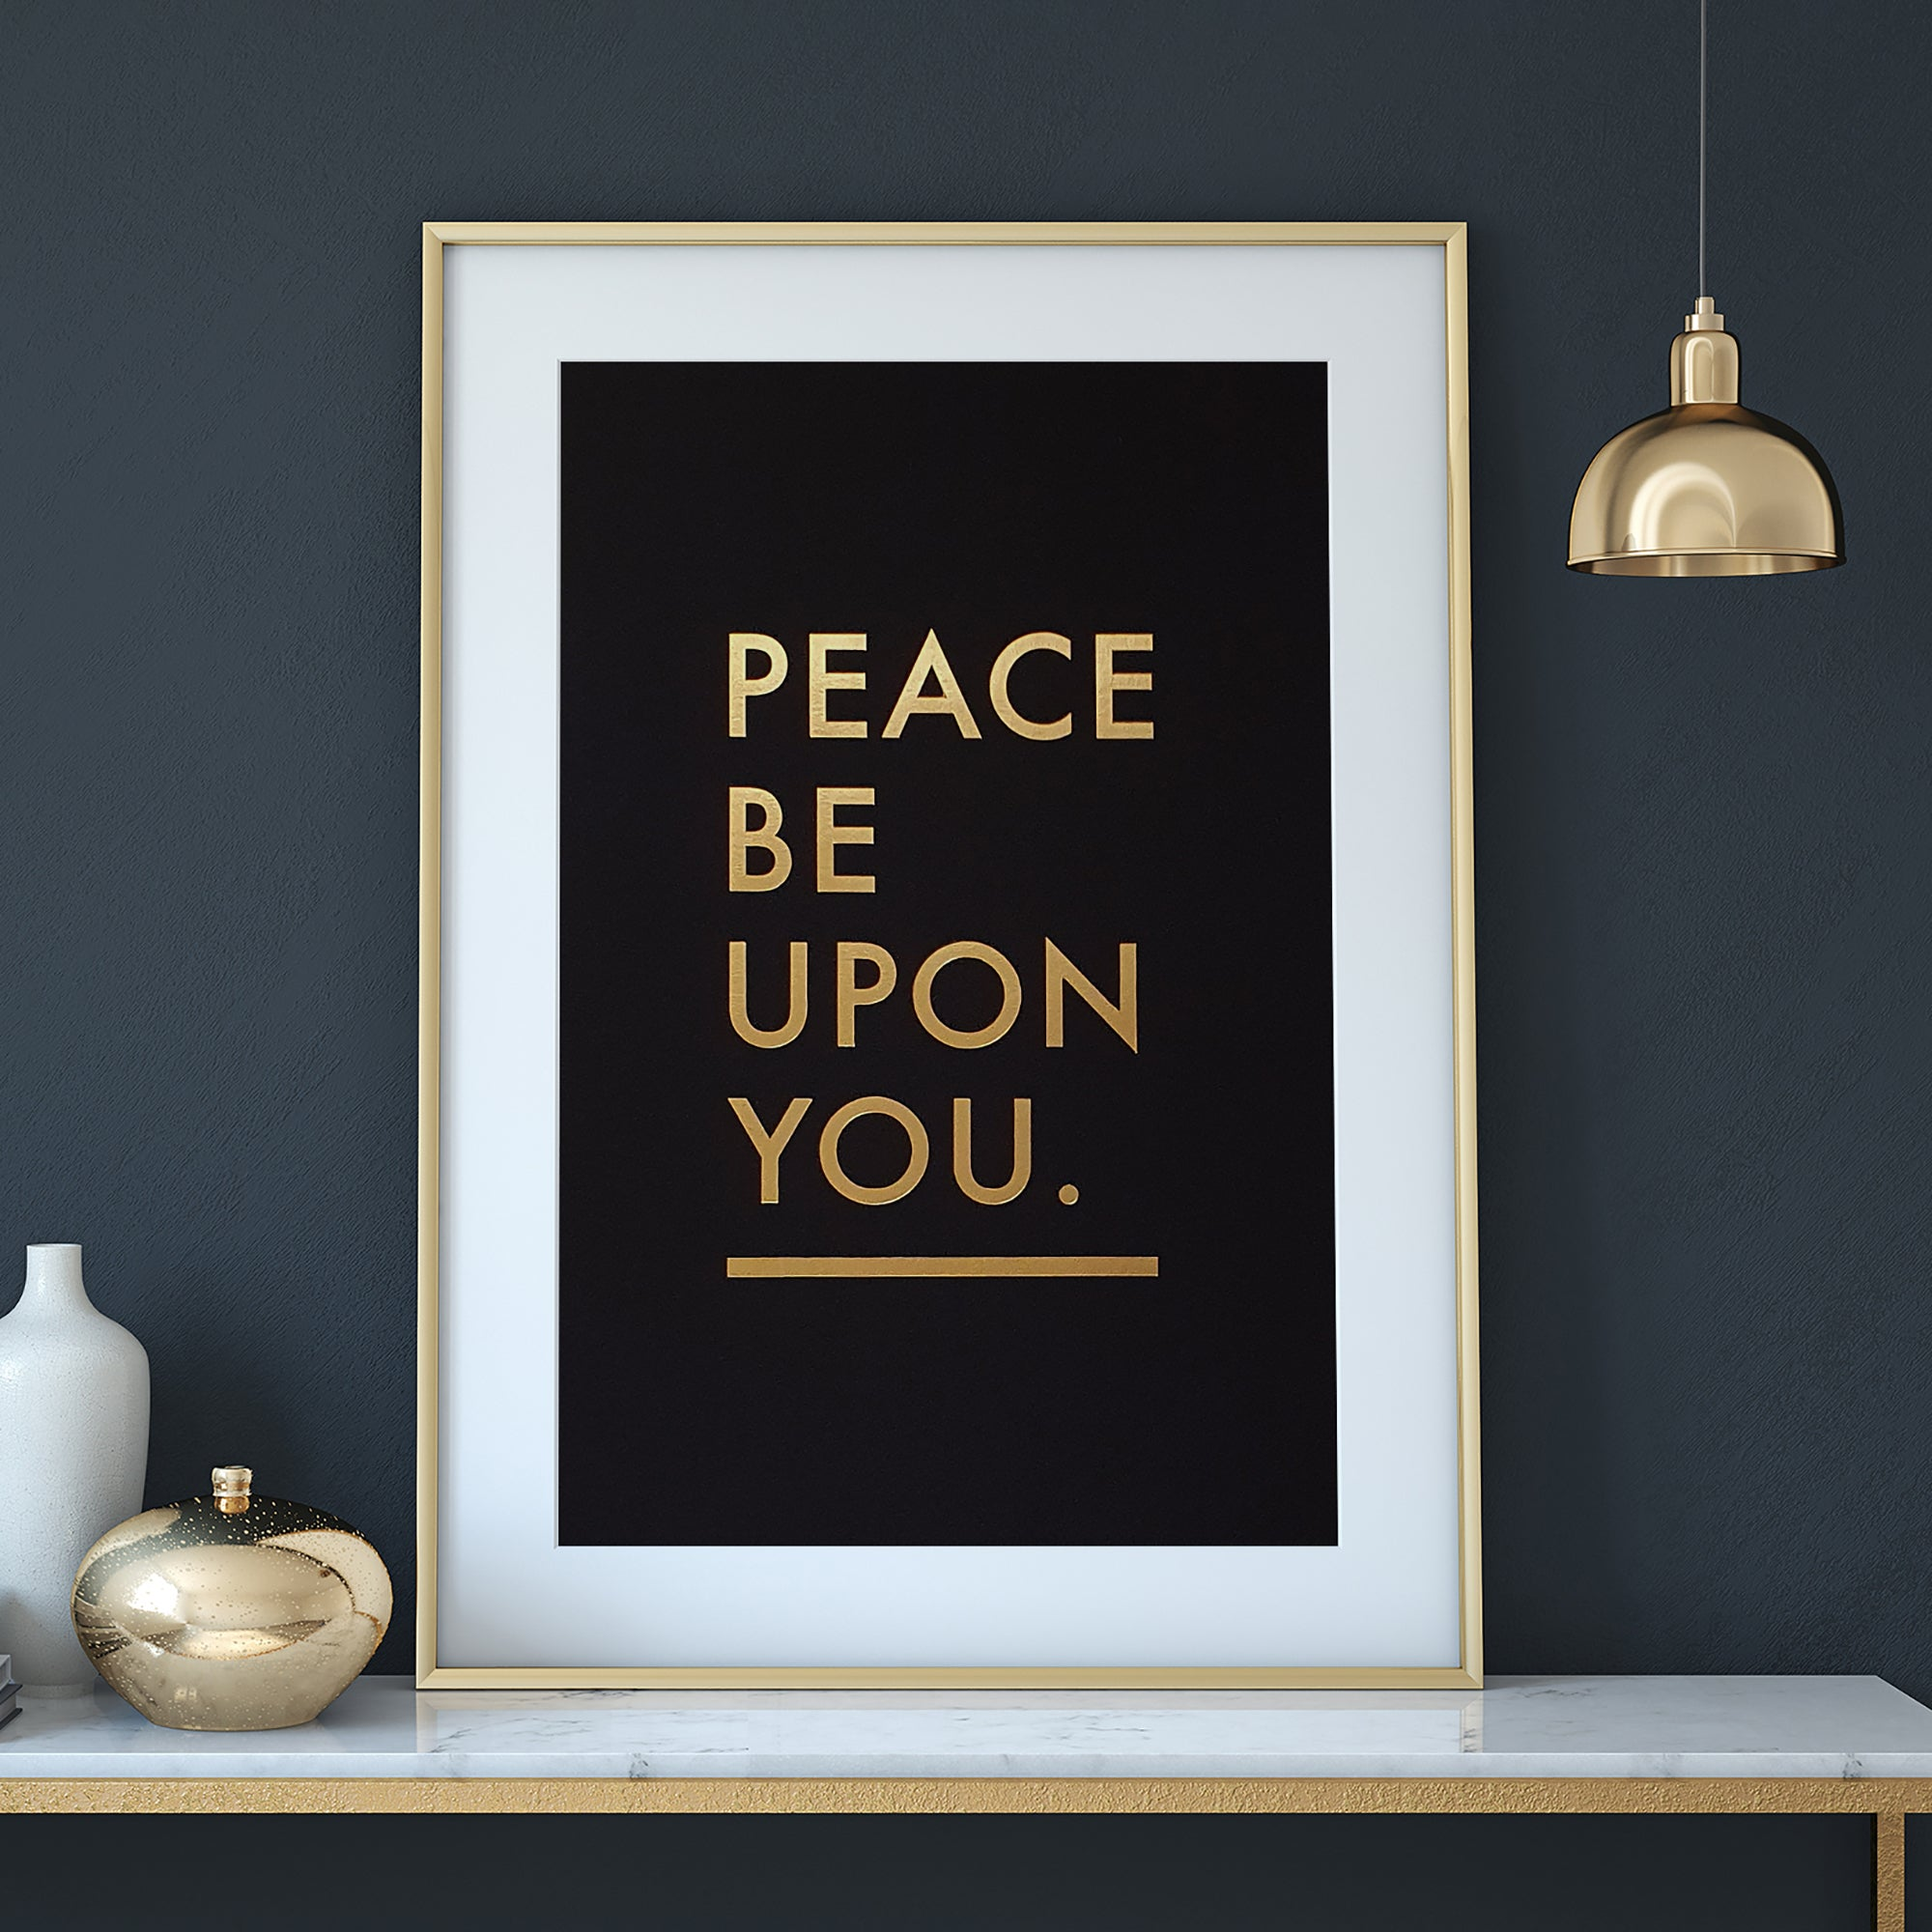 Peace be upon you Gold letter press print by Safar London